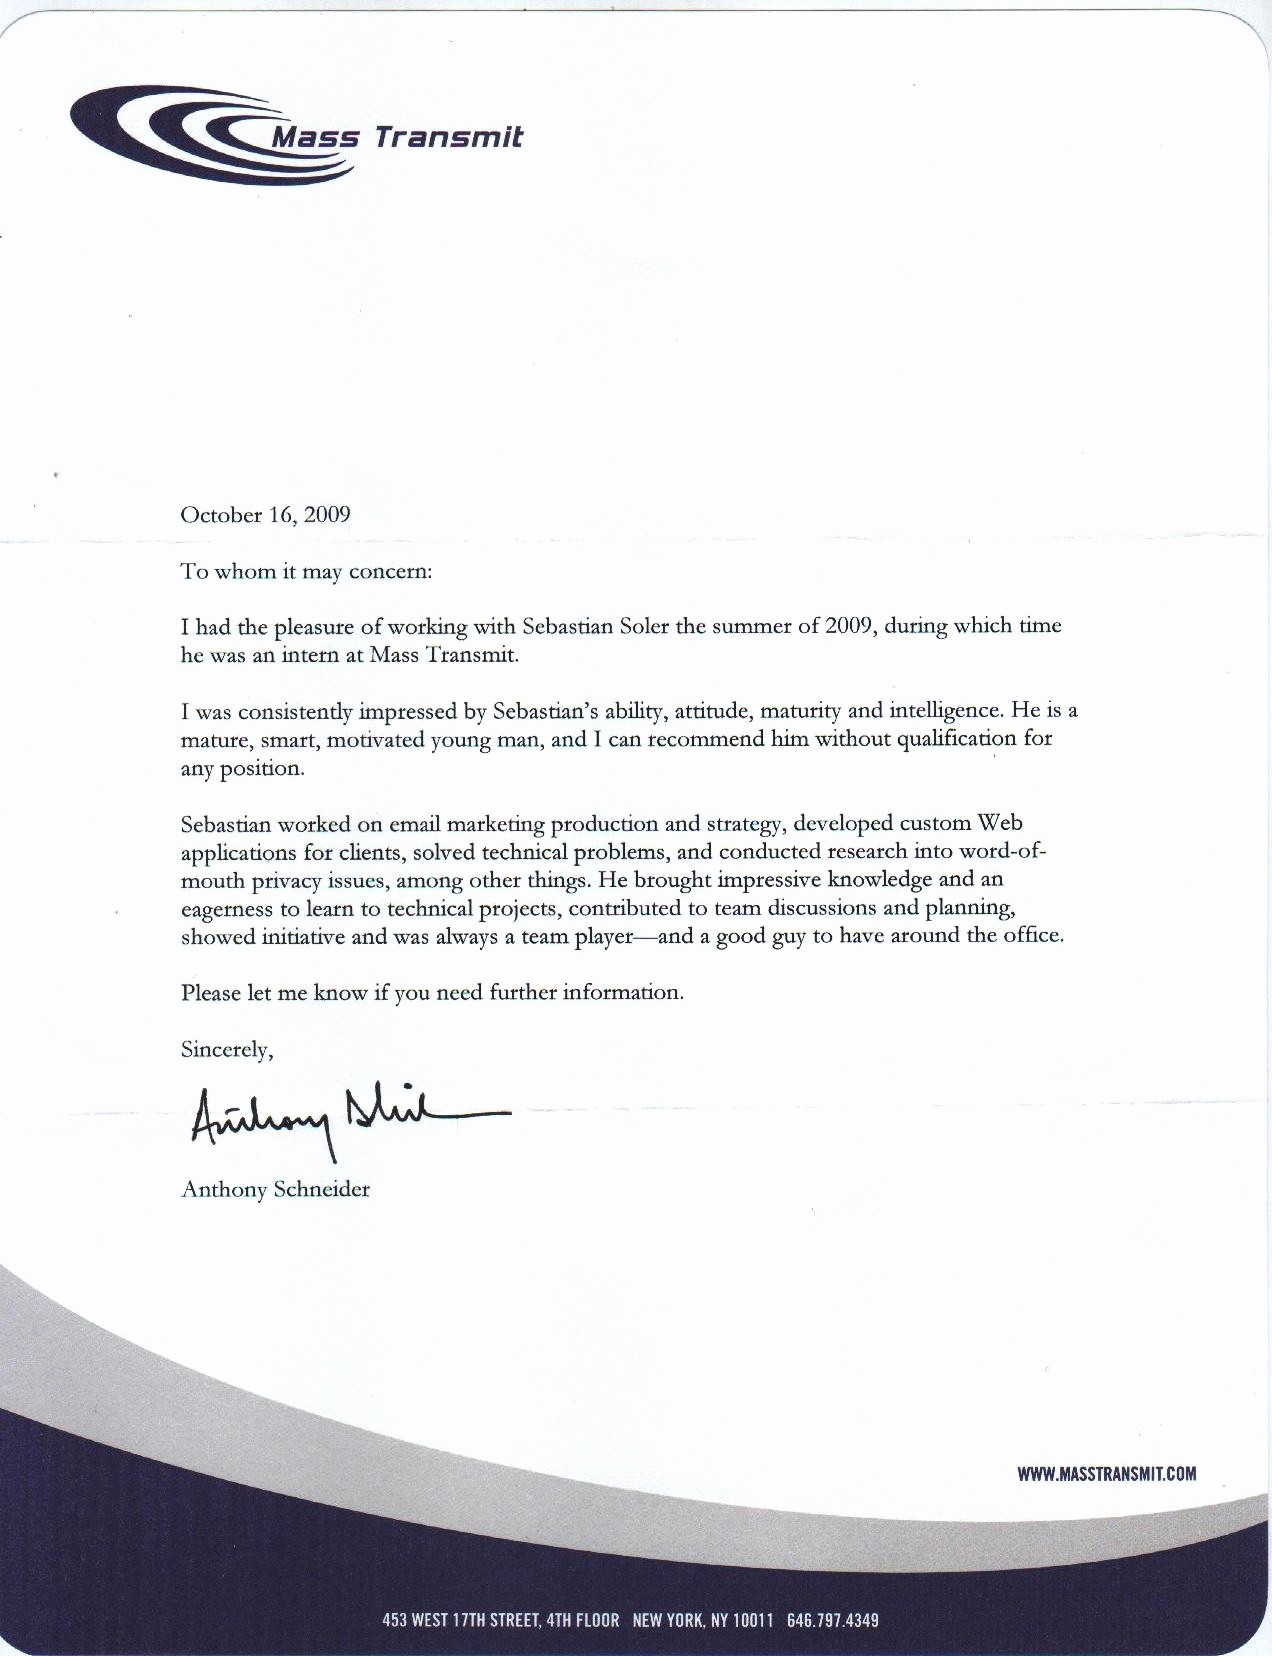 Format Of A Recomendation Letter Fresh Re Mendation Letter format for Internship